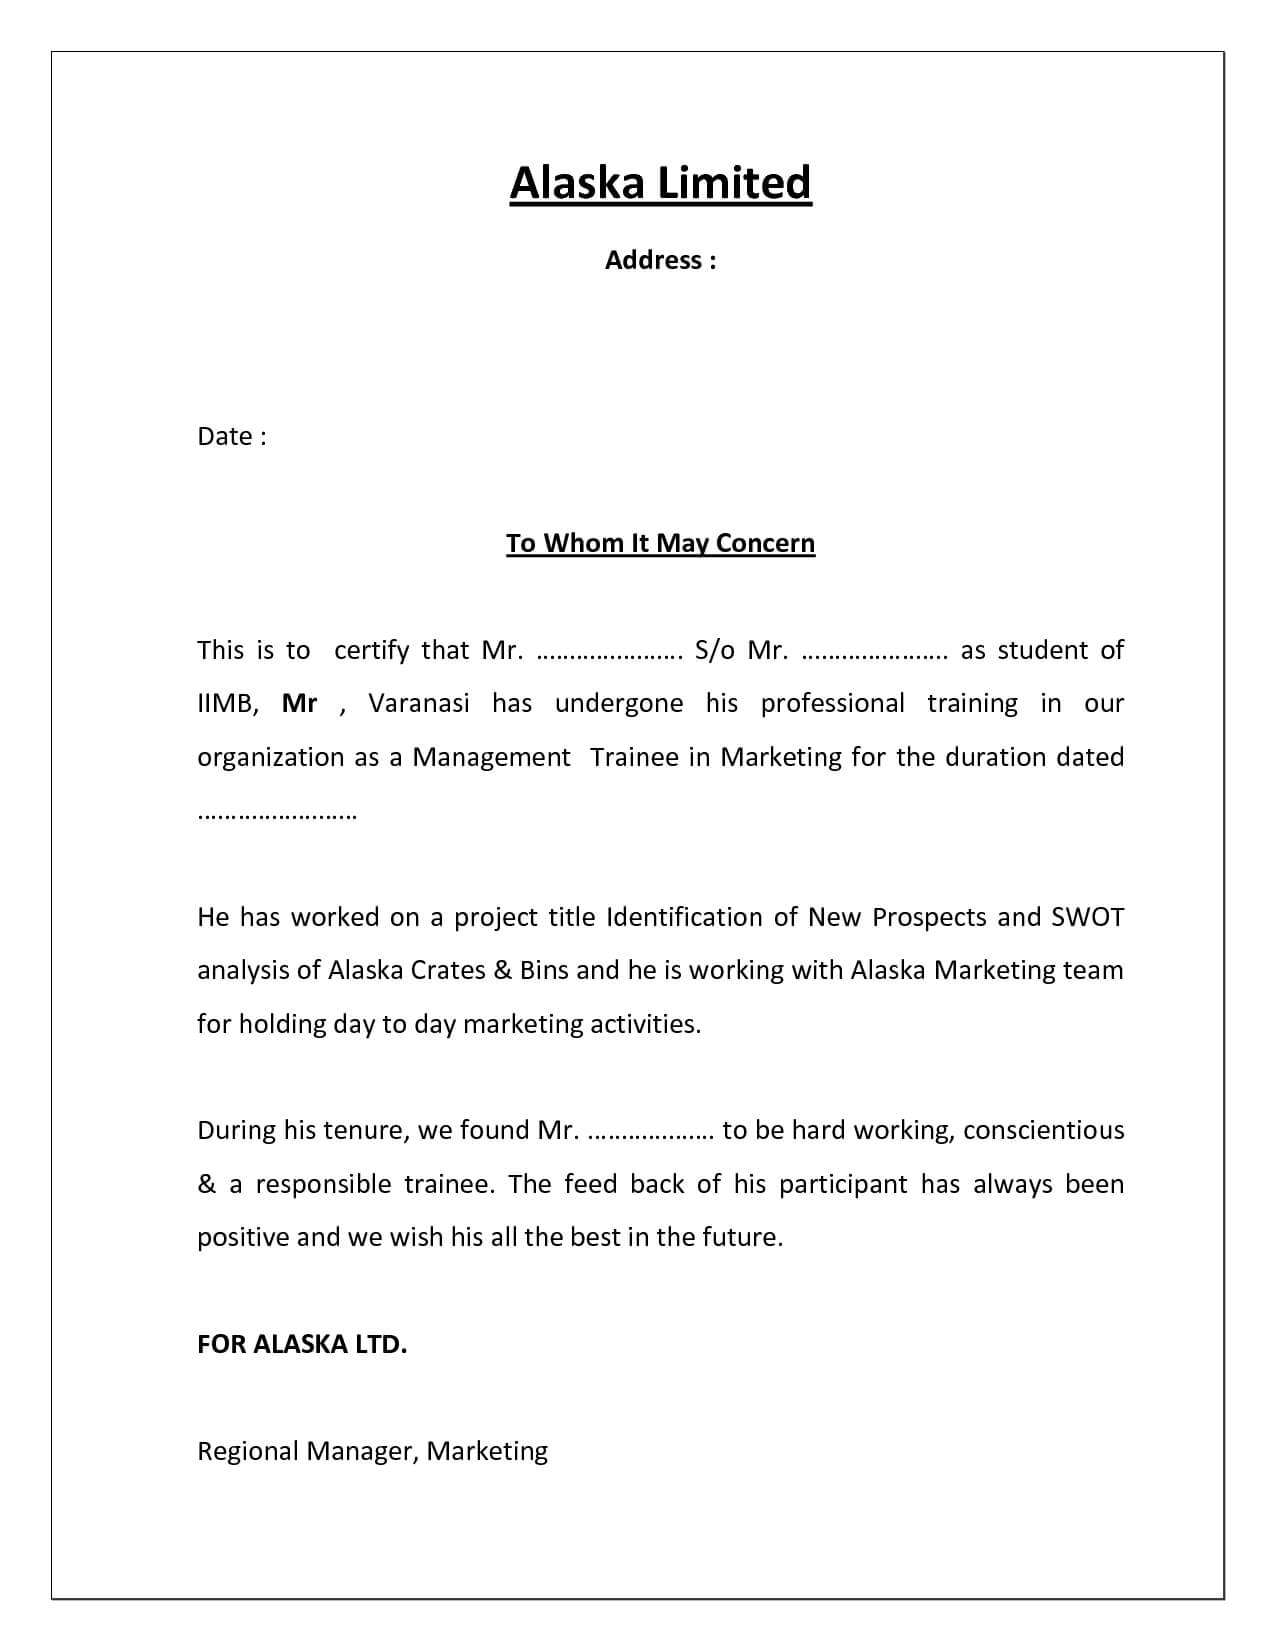 Project Completion Certificate Template | Lettering Inside Certificate Template For Project Completion